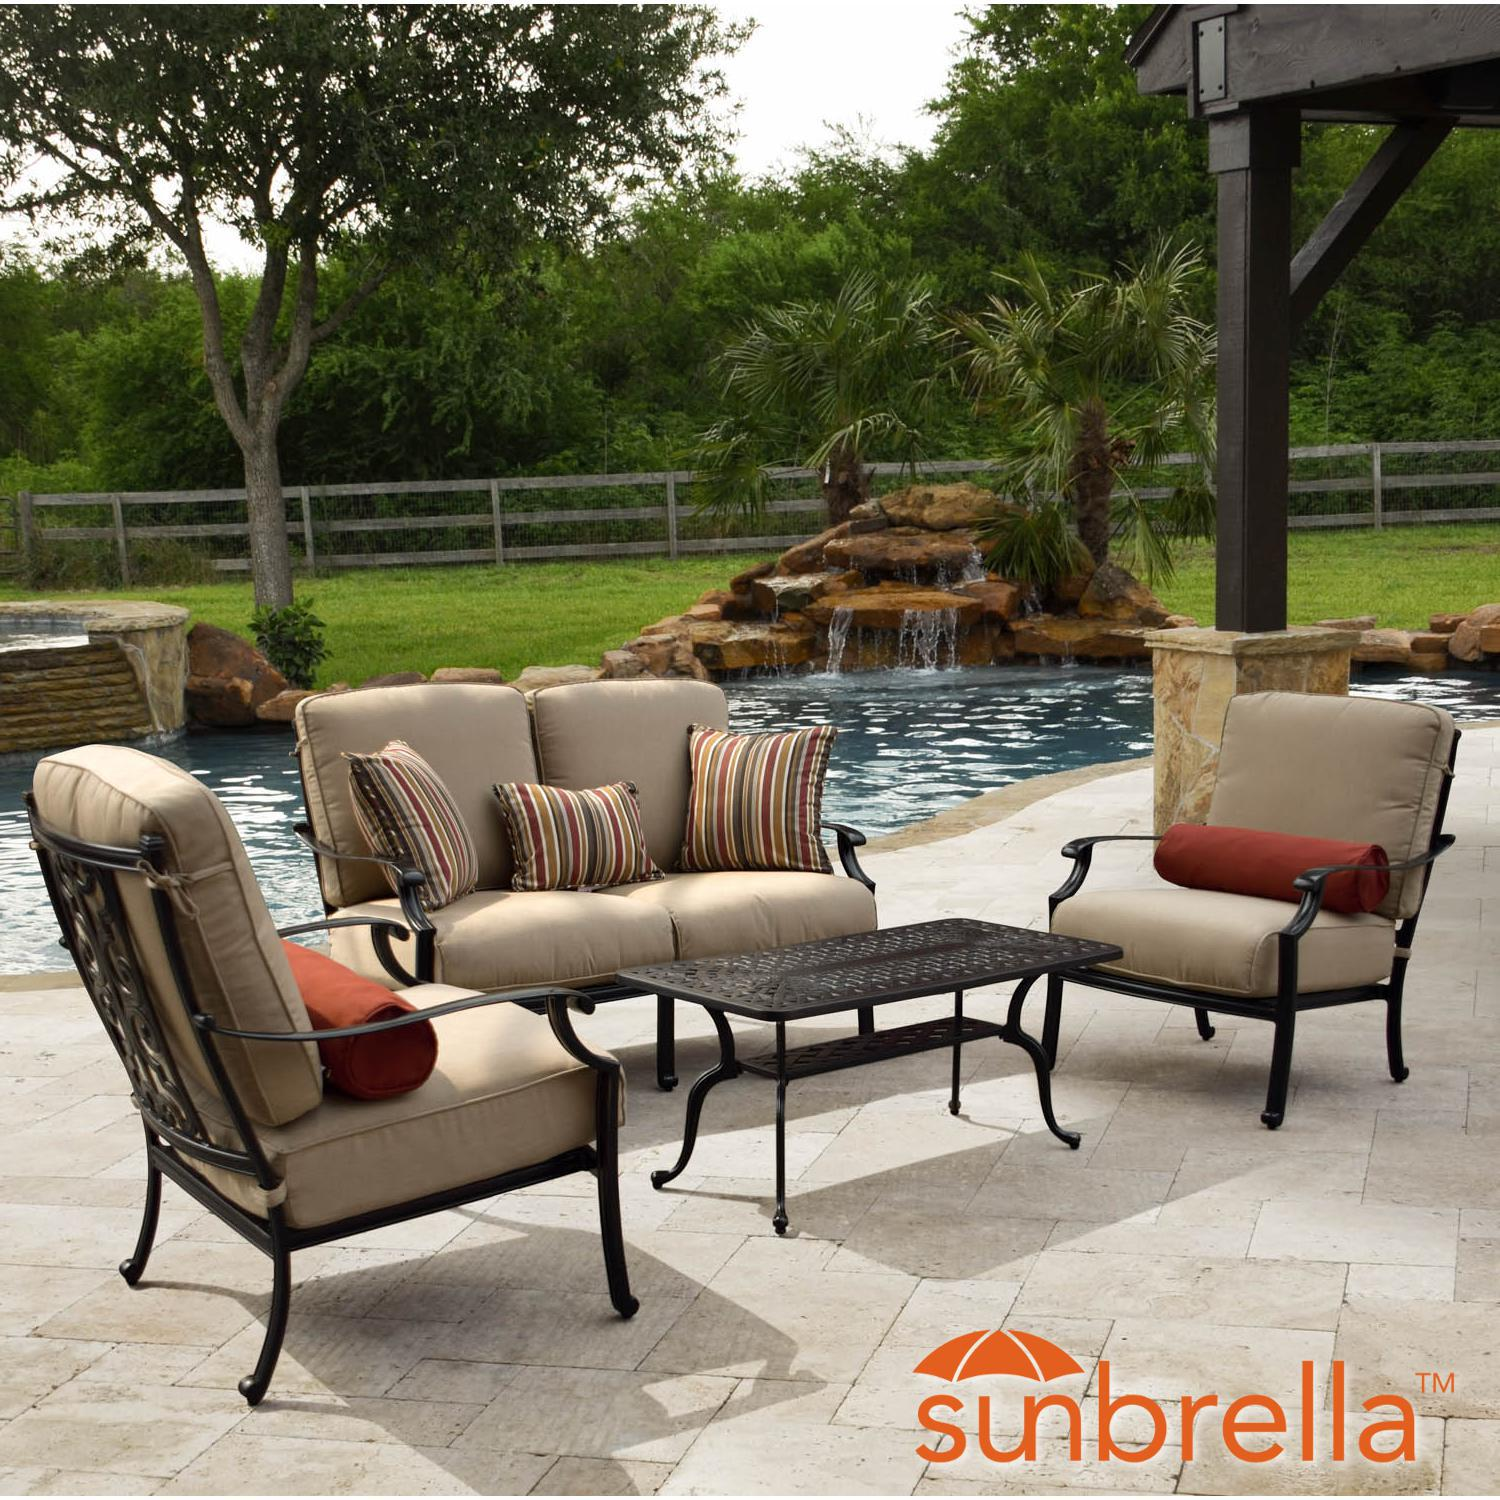 Bocage 4 piece cast aluminum patio conversation set w loveseat club chairs sunbrella heather beige cushions by lakeview outdoor designs